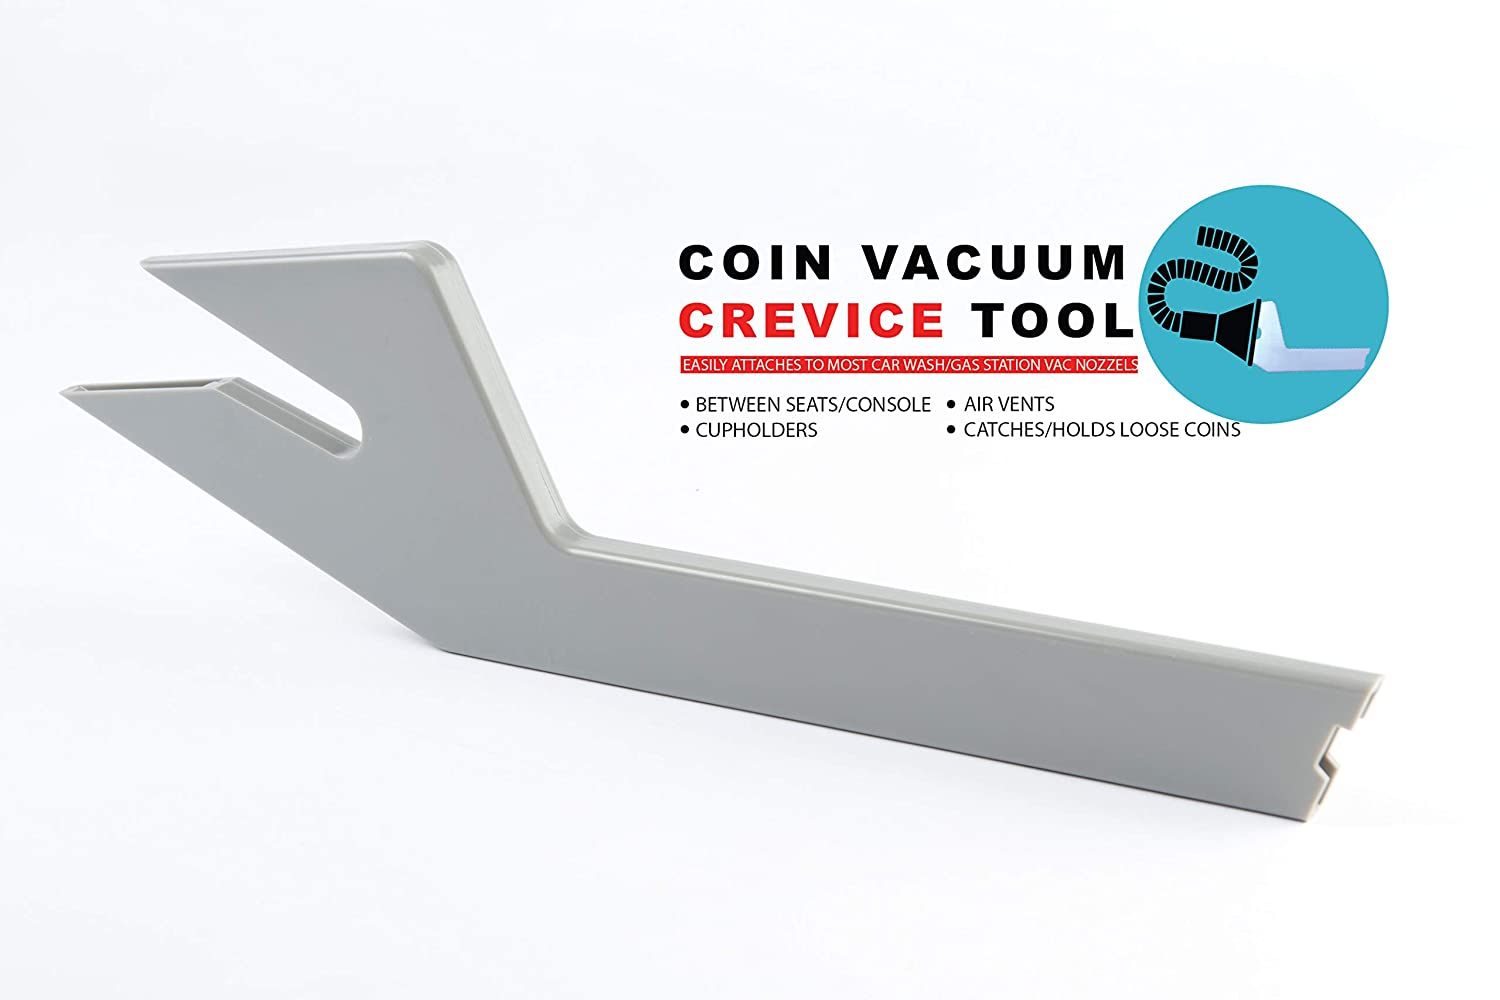 Web3 Products Vehicle Vac Vacuum Crevice Tool Attachment, Car Cleaning Tools, Shop Vac Accessories, Auto Detailing Supplies, Coin Vacuum Crevice Tool